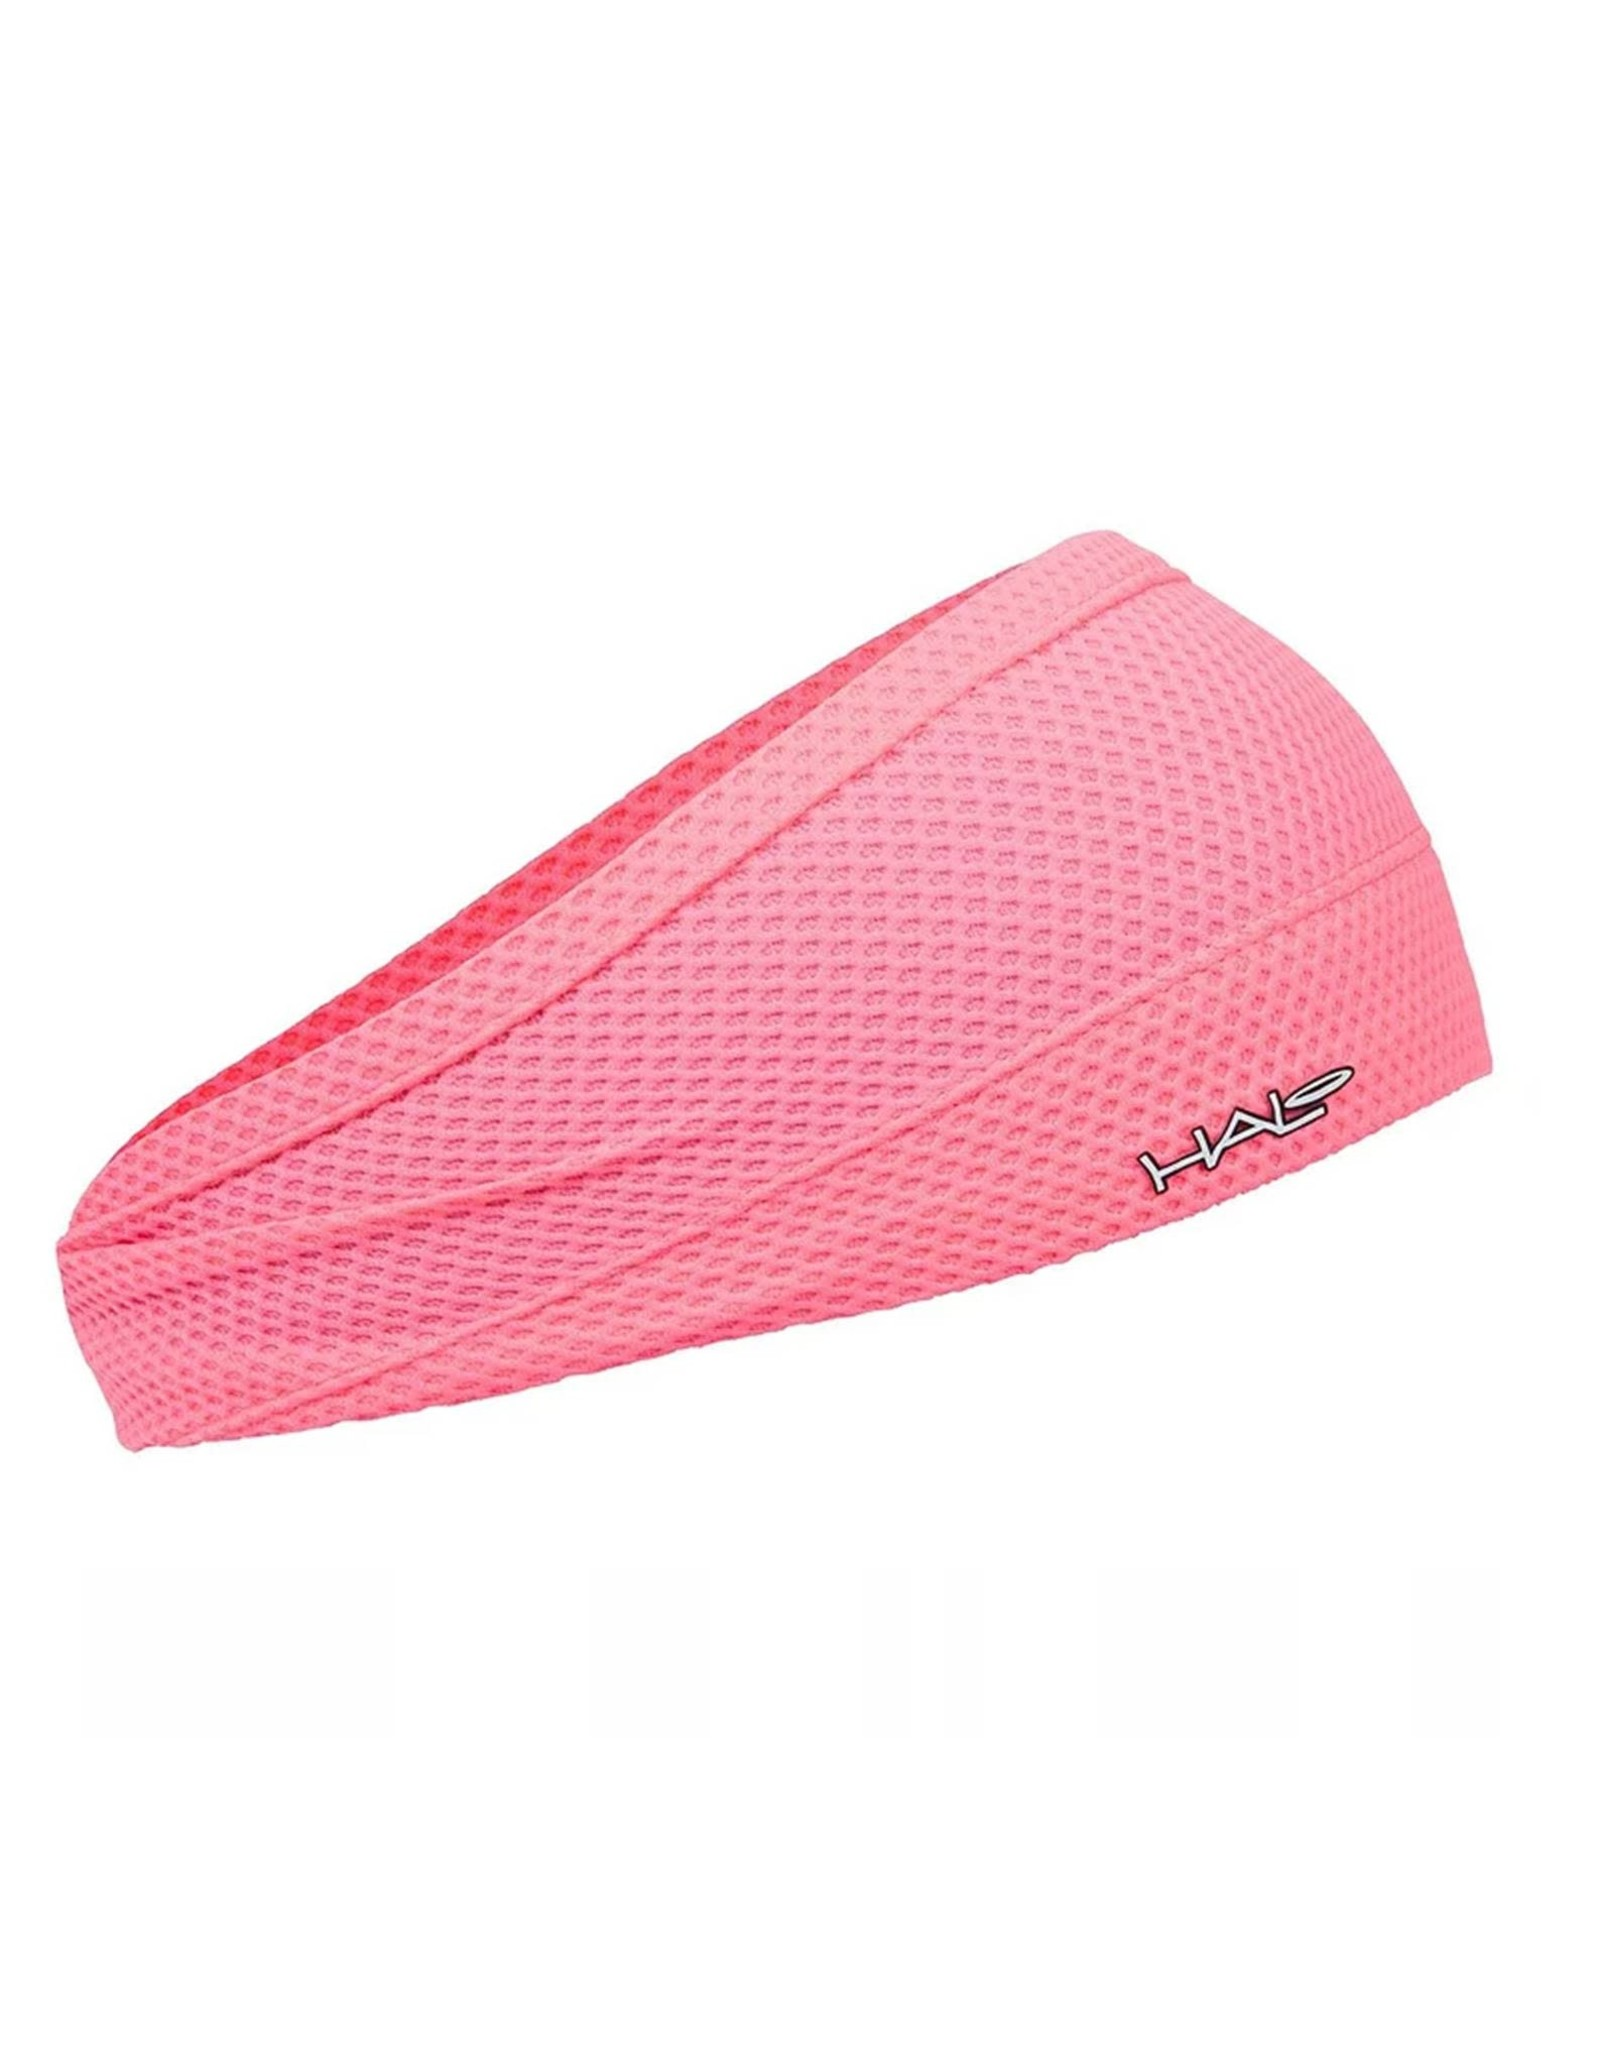 Halo Bandit Air Headband Coral